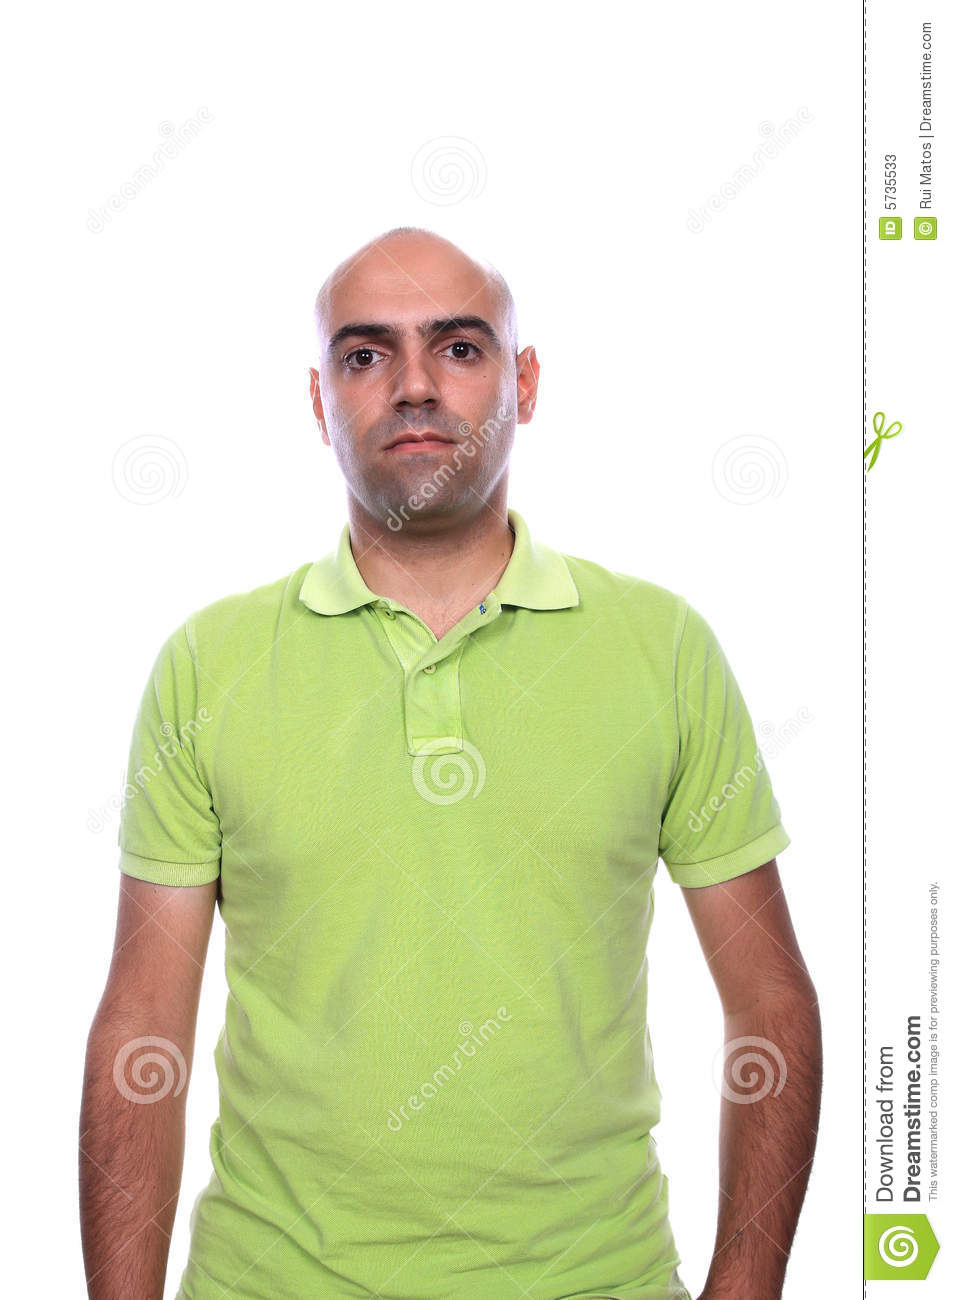 Handsome thirties man in white polo shirt stock image for Man in polo shirt